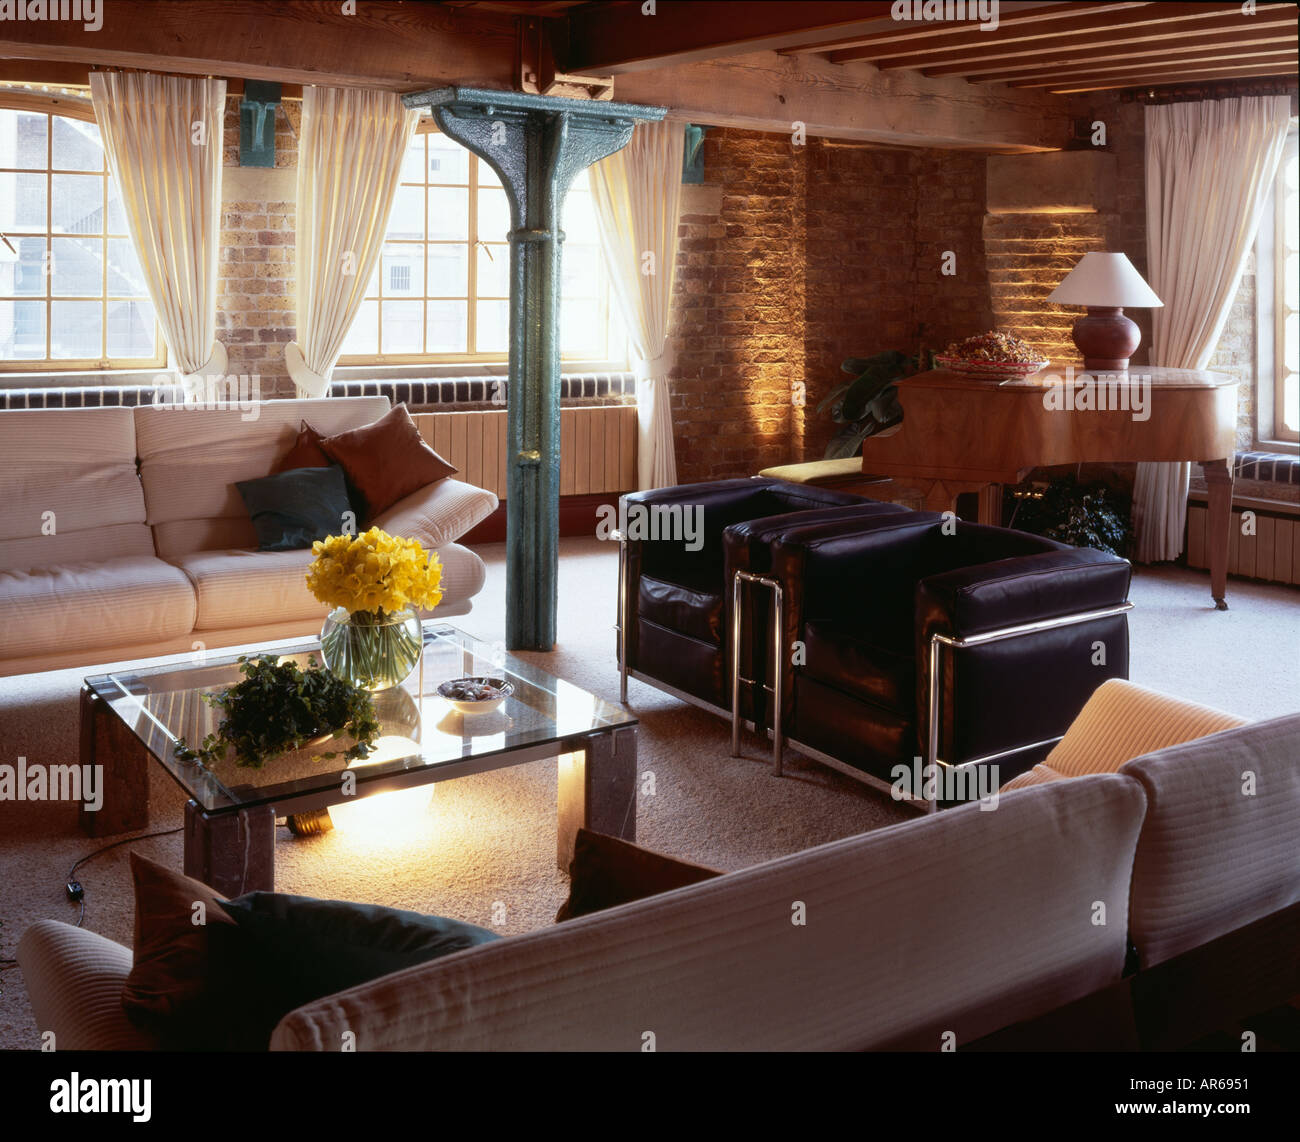 Show Flat, New Concordia Wharf, Docklands. Living area. - Stock Image